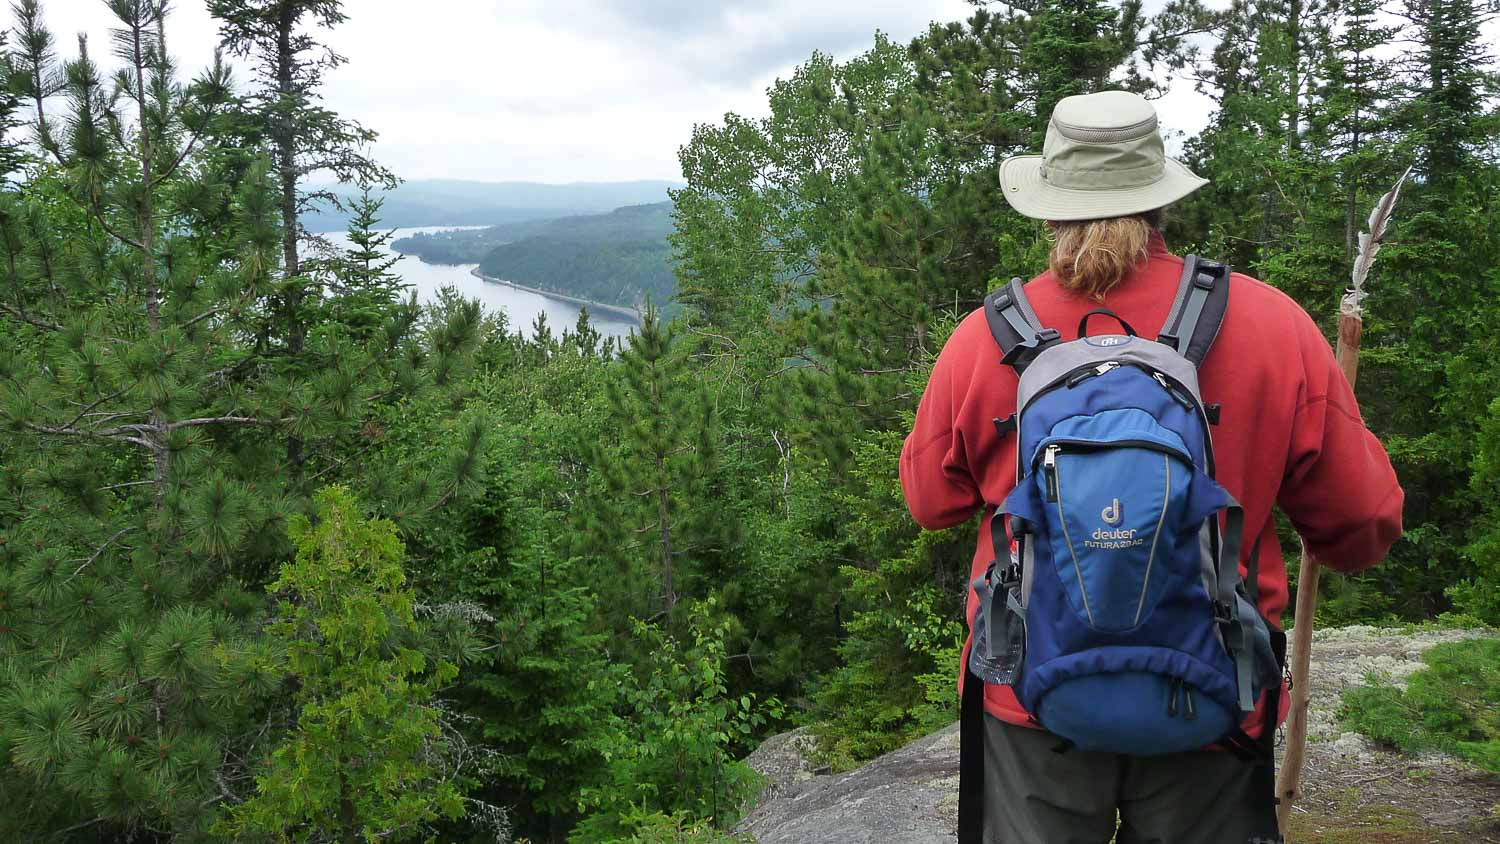 Forge Film production the great trails episode in the Mauricie region in Quebec with a guide showing us the scenery